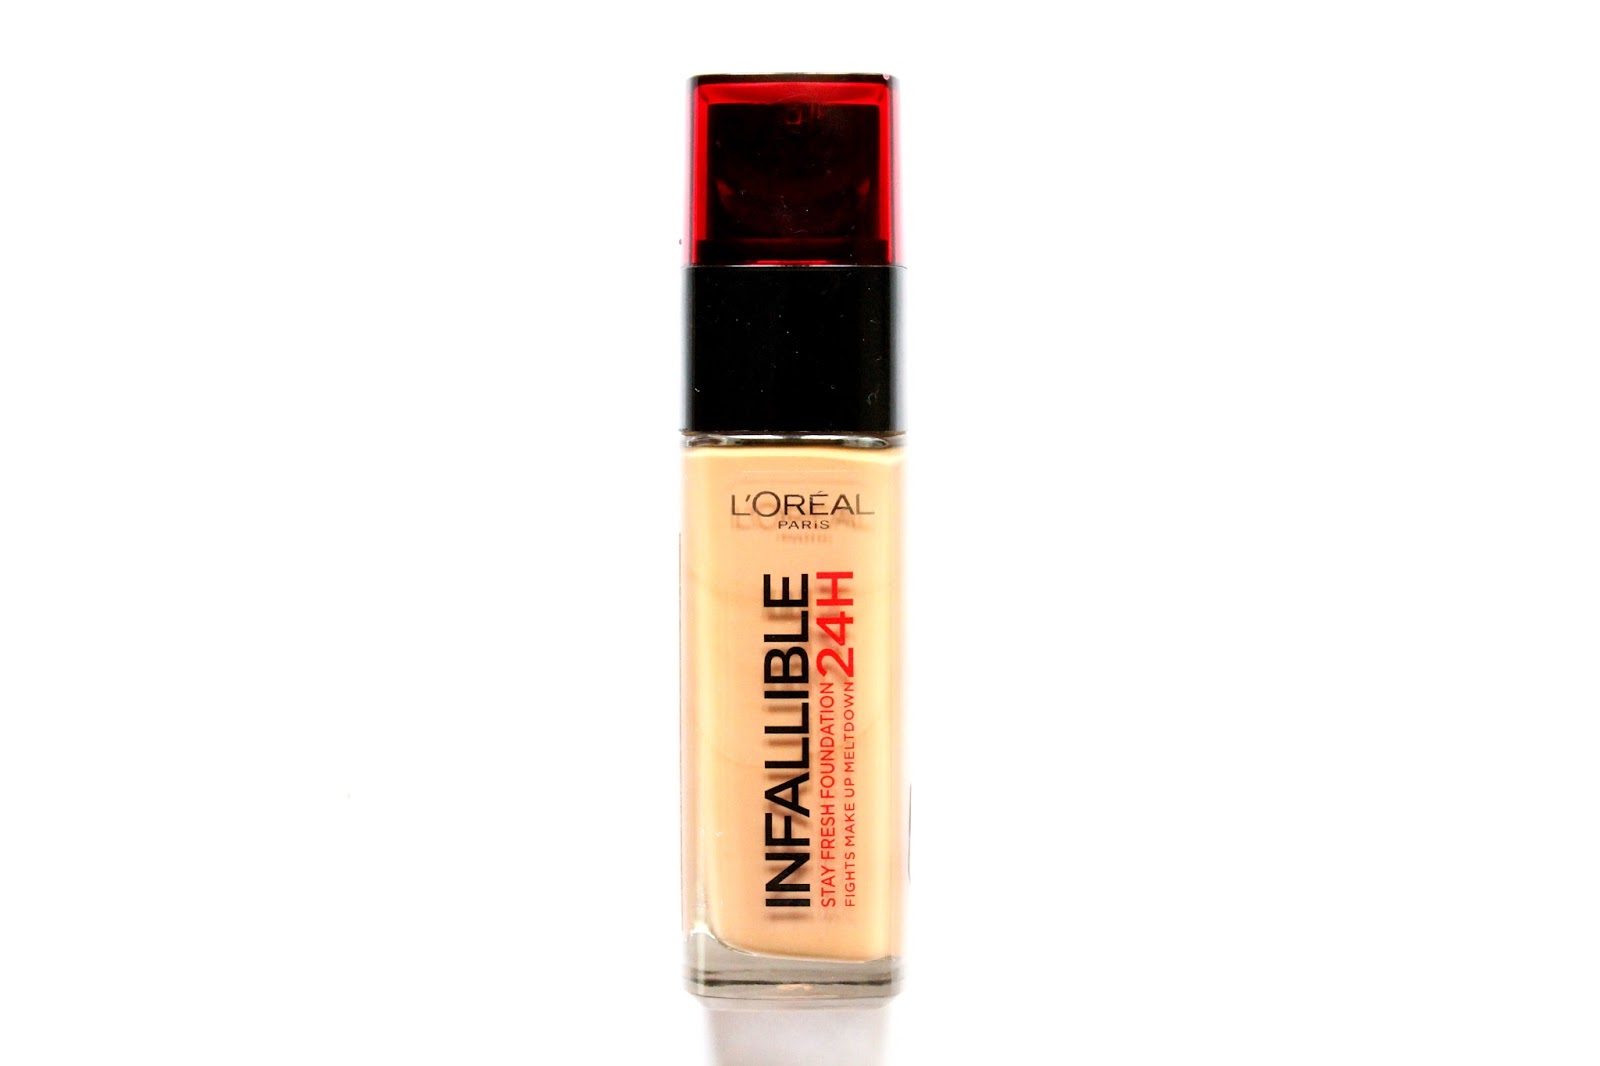 L'Oréal Paris 24H Infallible Reno Liquid Foundation review, photos, price, buy online india